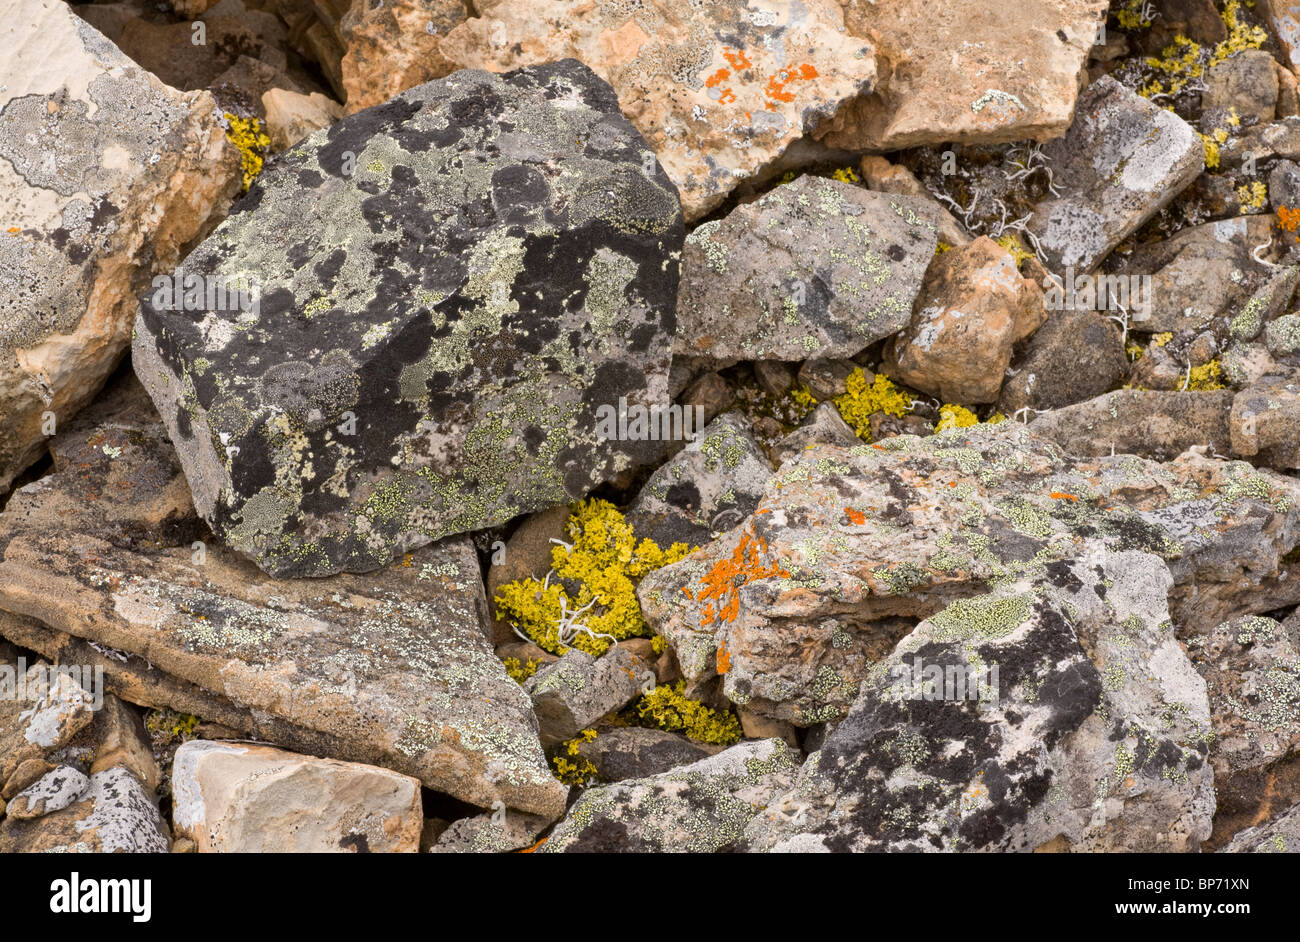 Lichens on high-altitude scree in the canadian rockies. Banff. - Stock Image